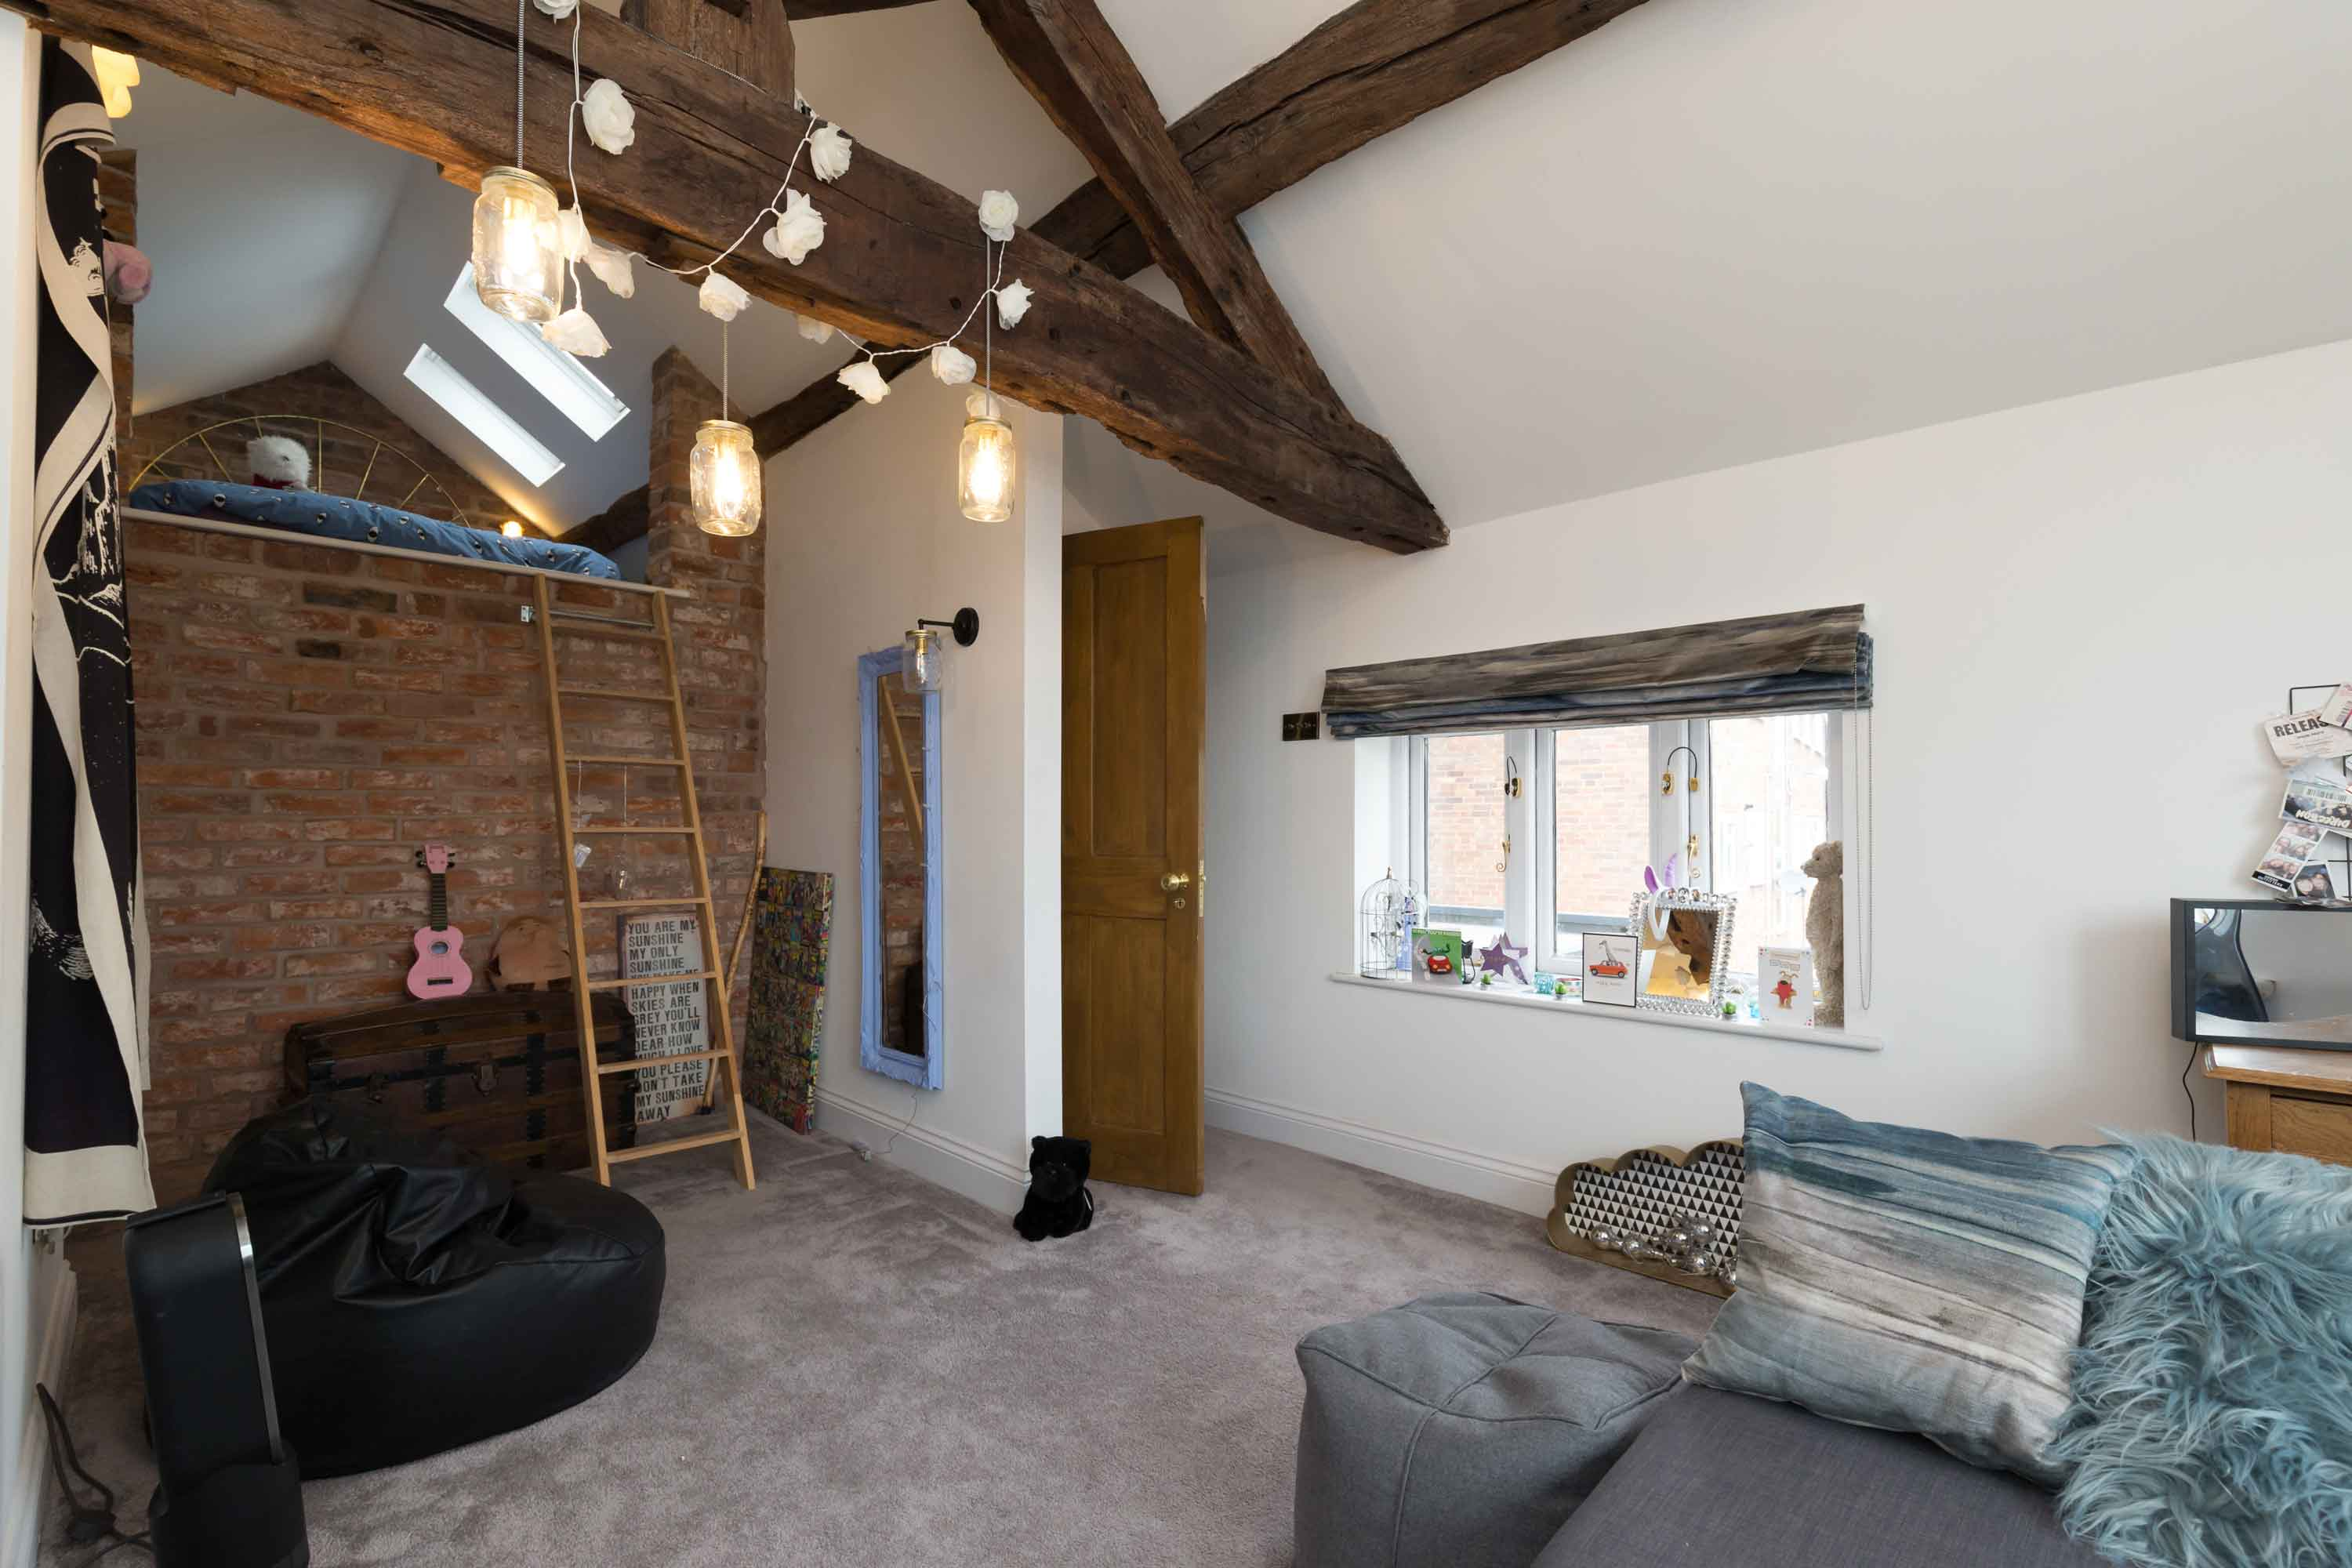 loft bedroom conservation timber beams oak brick wall